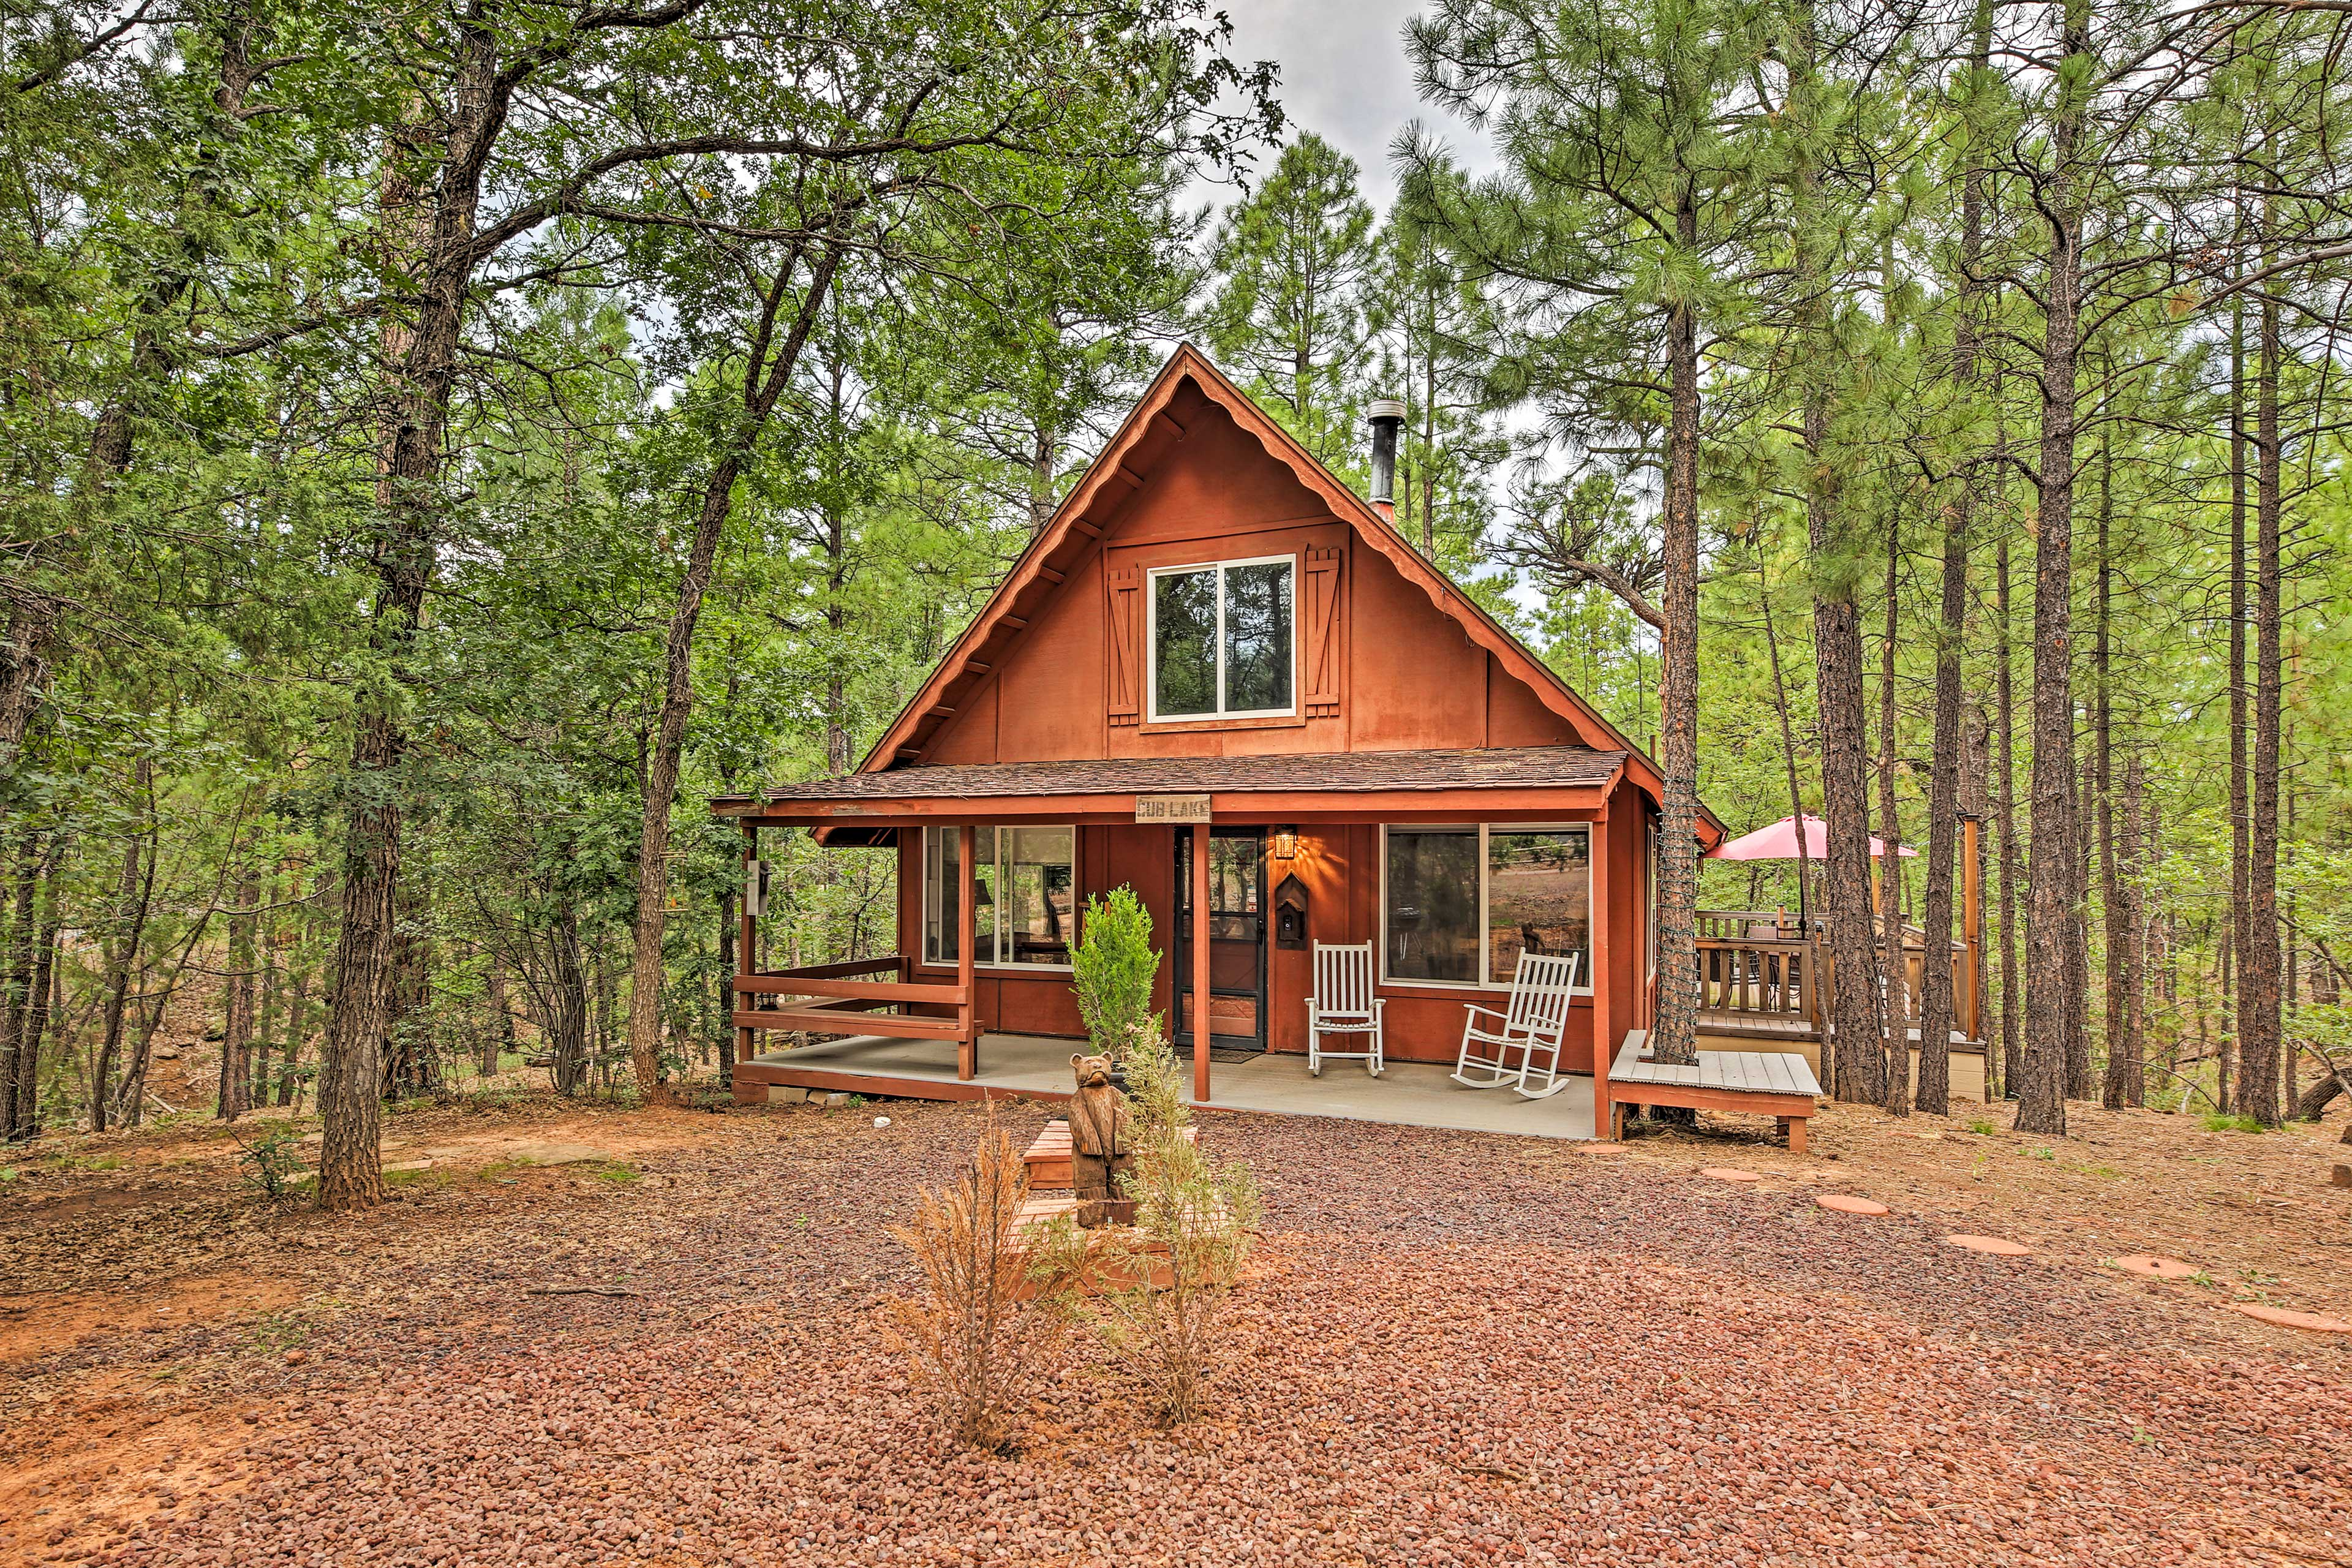 Show Low Vacation Rental | 3BR | 1.5BA | 1,475 Sq Ft | Step-Free Access